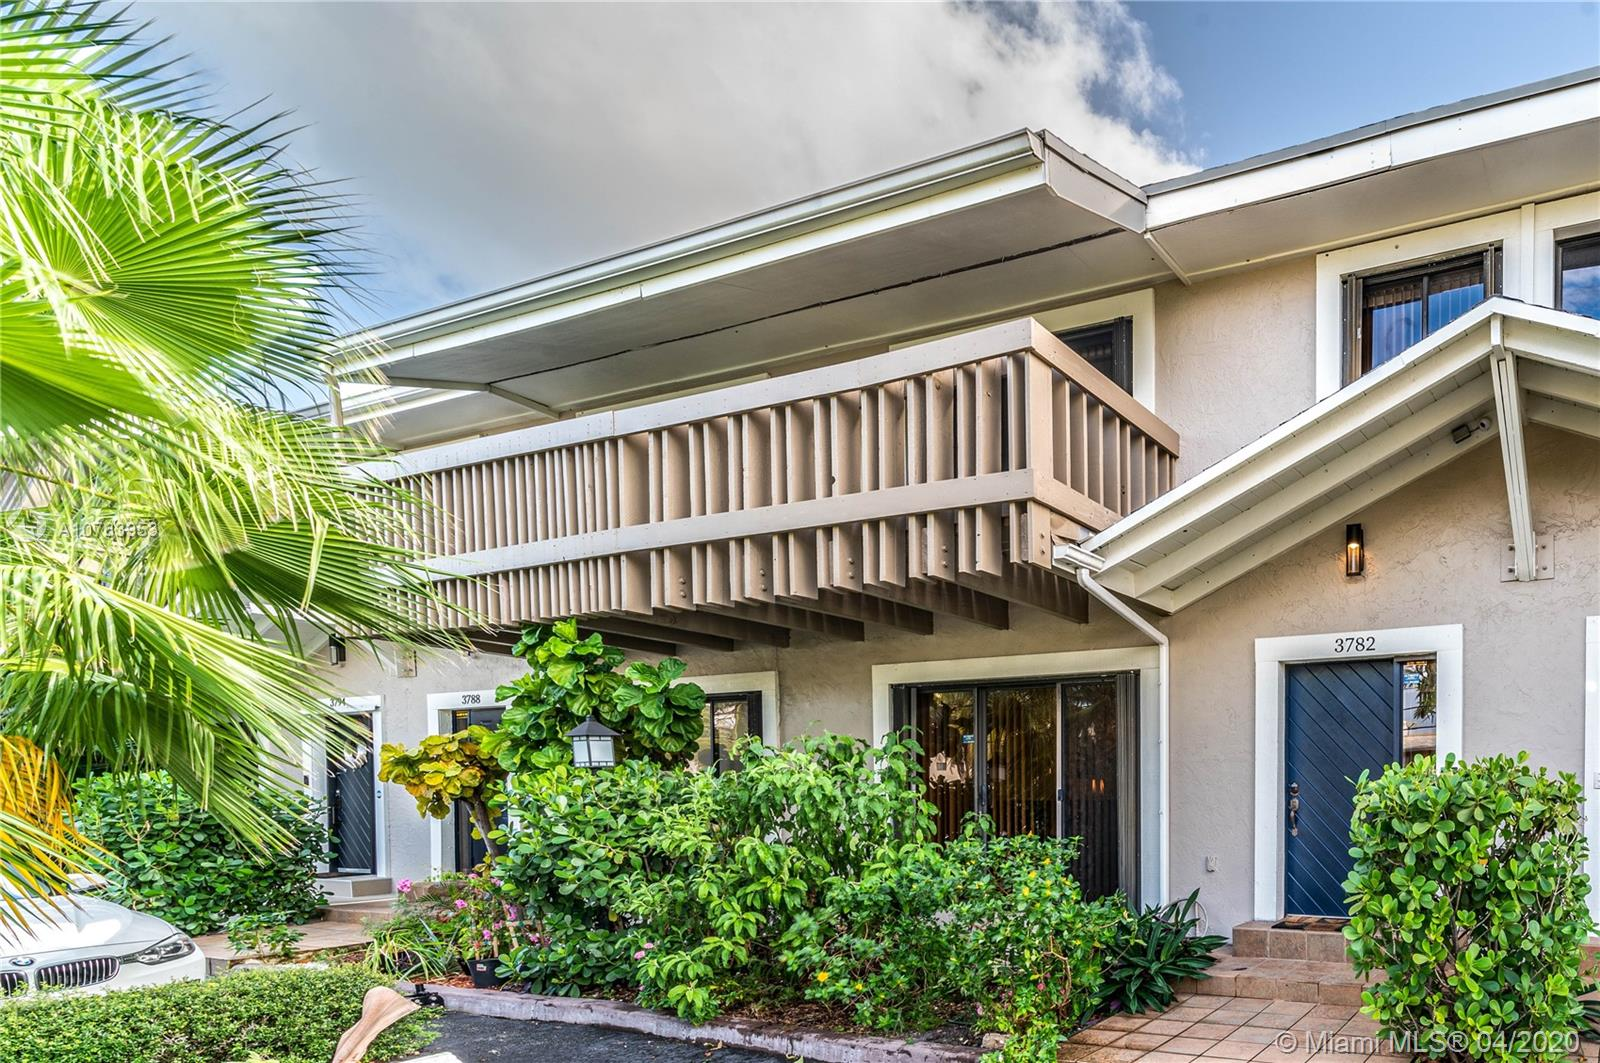 Beautiful and spacious waterfront townhome with 35 ft dock directly behind the property, close to  2,000 sq ft of living space. Access the Intracoastal and the ocean with no bridges, located only minutes away from the intracoastal waterway and 3 miles North of Haulover Inlet in N. Miami.  The Tides Towhhomes is a secluded community of only 17 townhomes. It offers privacy with no buildings on the back of the property, only canal view.    This home was renovated, has large porcelain tile floors downstairs and open kitchen. The bedrooms are pretty large, the master bedroom with balcony overlooks the water and the master bath is huge with a shower / jacuzzi tub. In addition, there is a Sauna Room on the second floor. The deck-sitting area has Dura Dock instead of wood. Very affordable HOA.